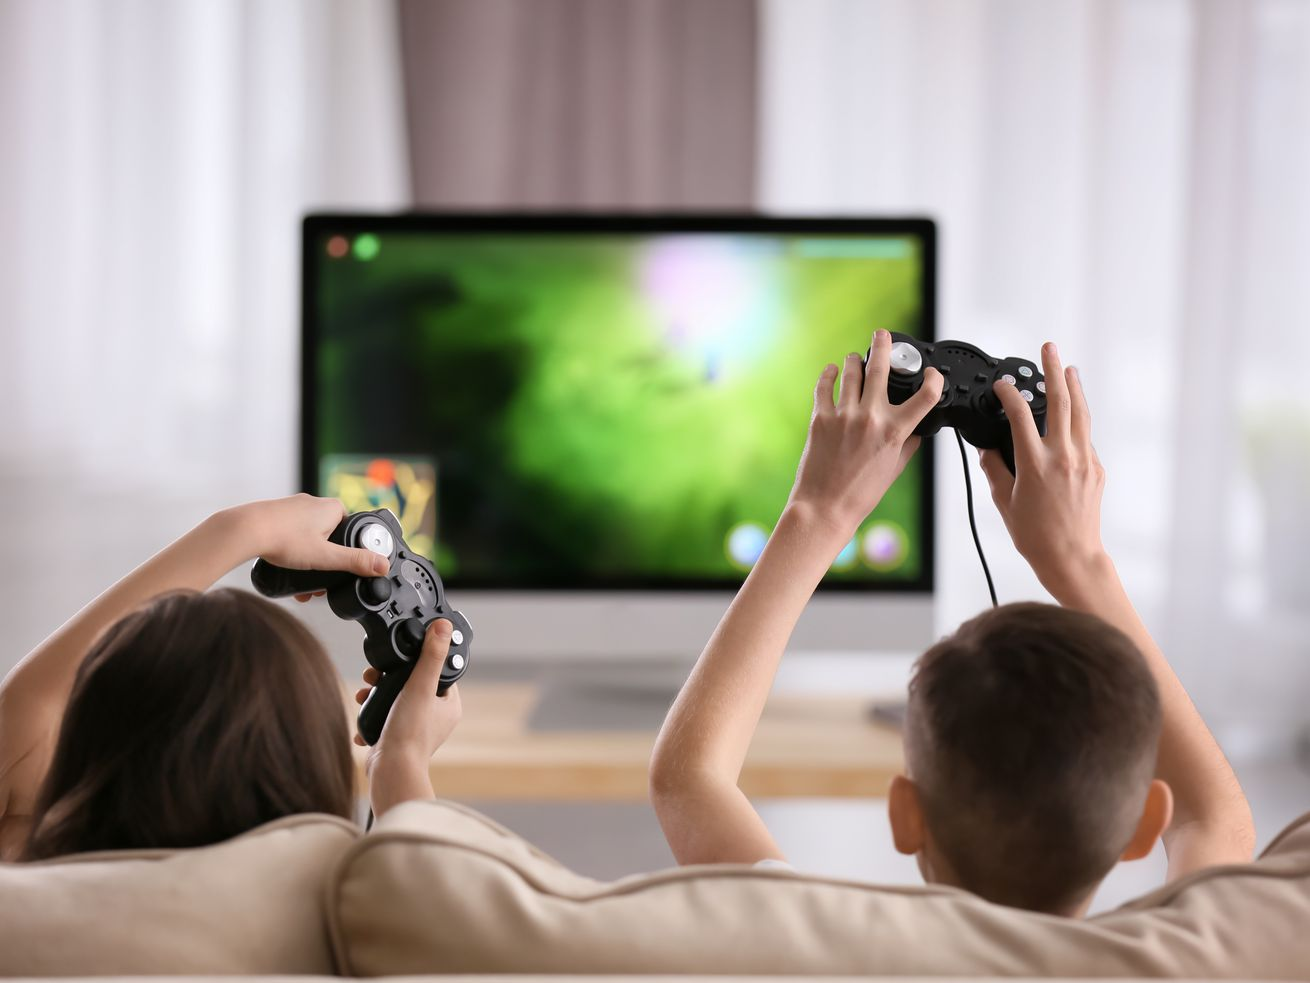 One expert suggests having kids earn money or use their allowance to buy virtual currency for game-playing.